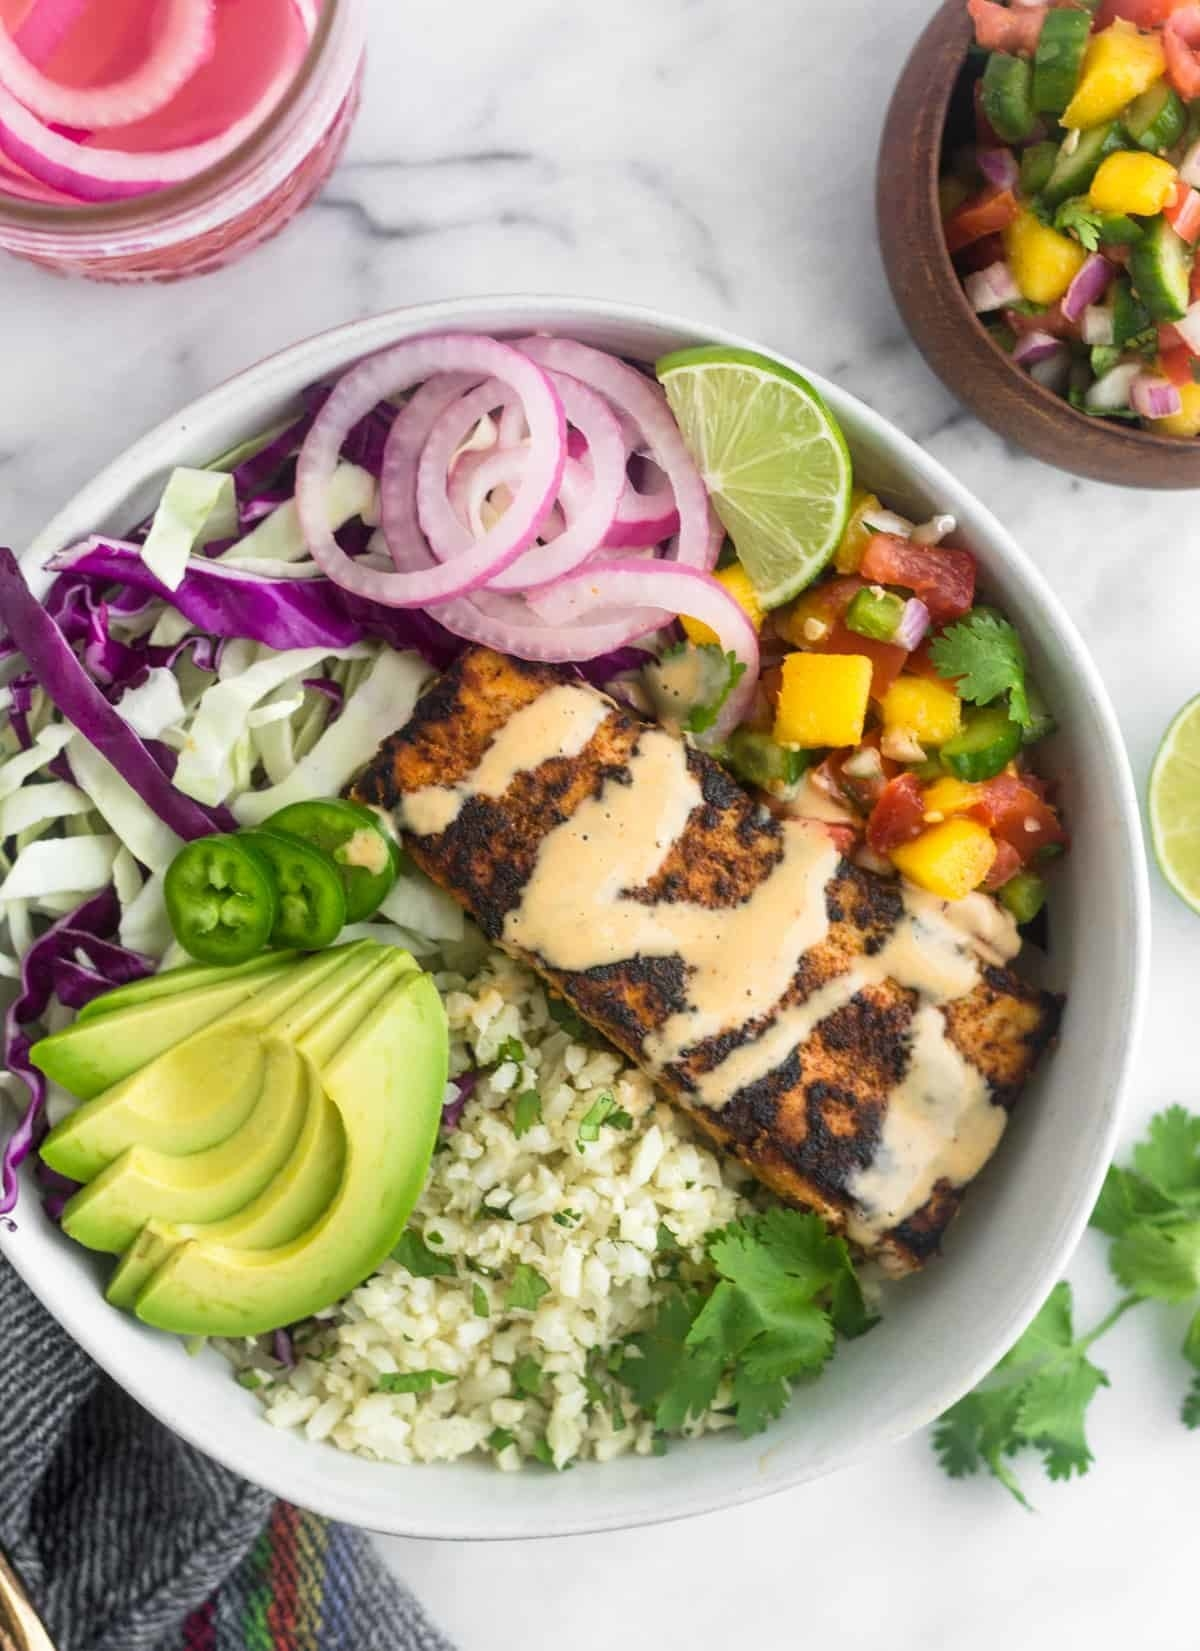 Riced cauliflower and shredded cabbage make a hearty base for these flavorful taco bowls. Opt for any flakey white fish and top the bowls with your favorite toppings like avocado and jalapeño. Get the recipe.